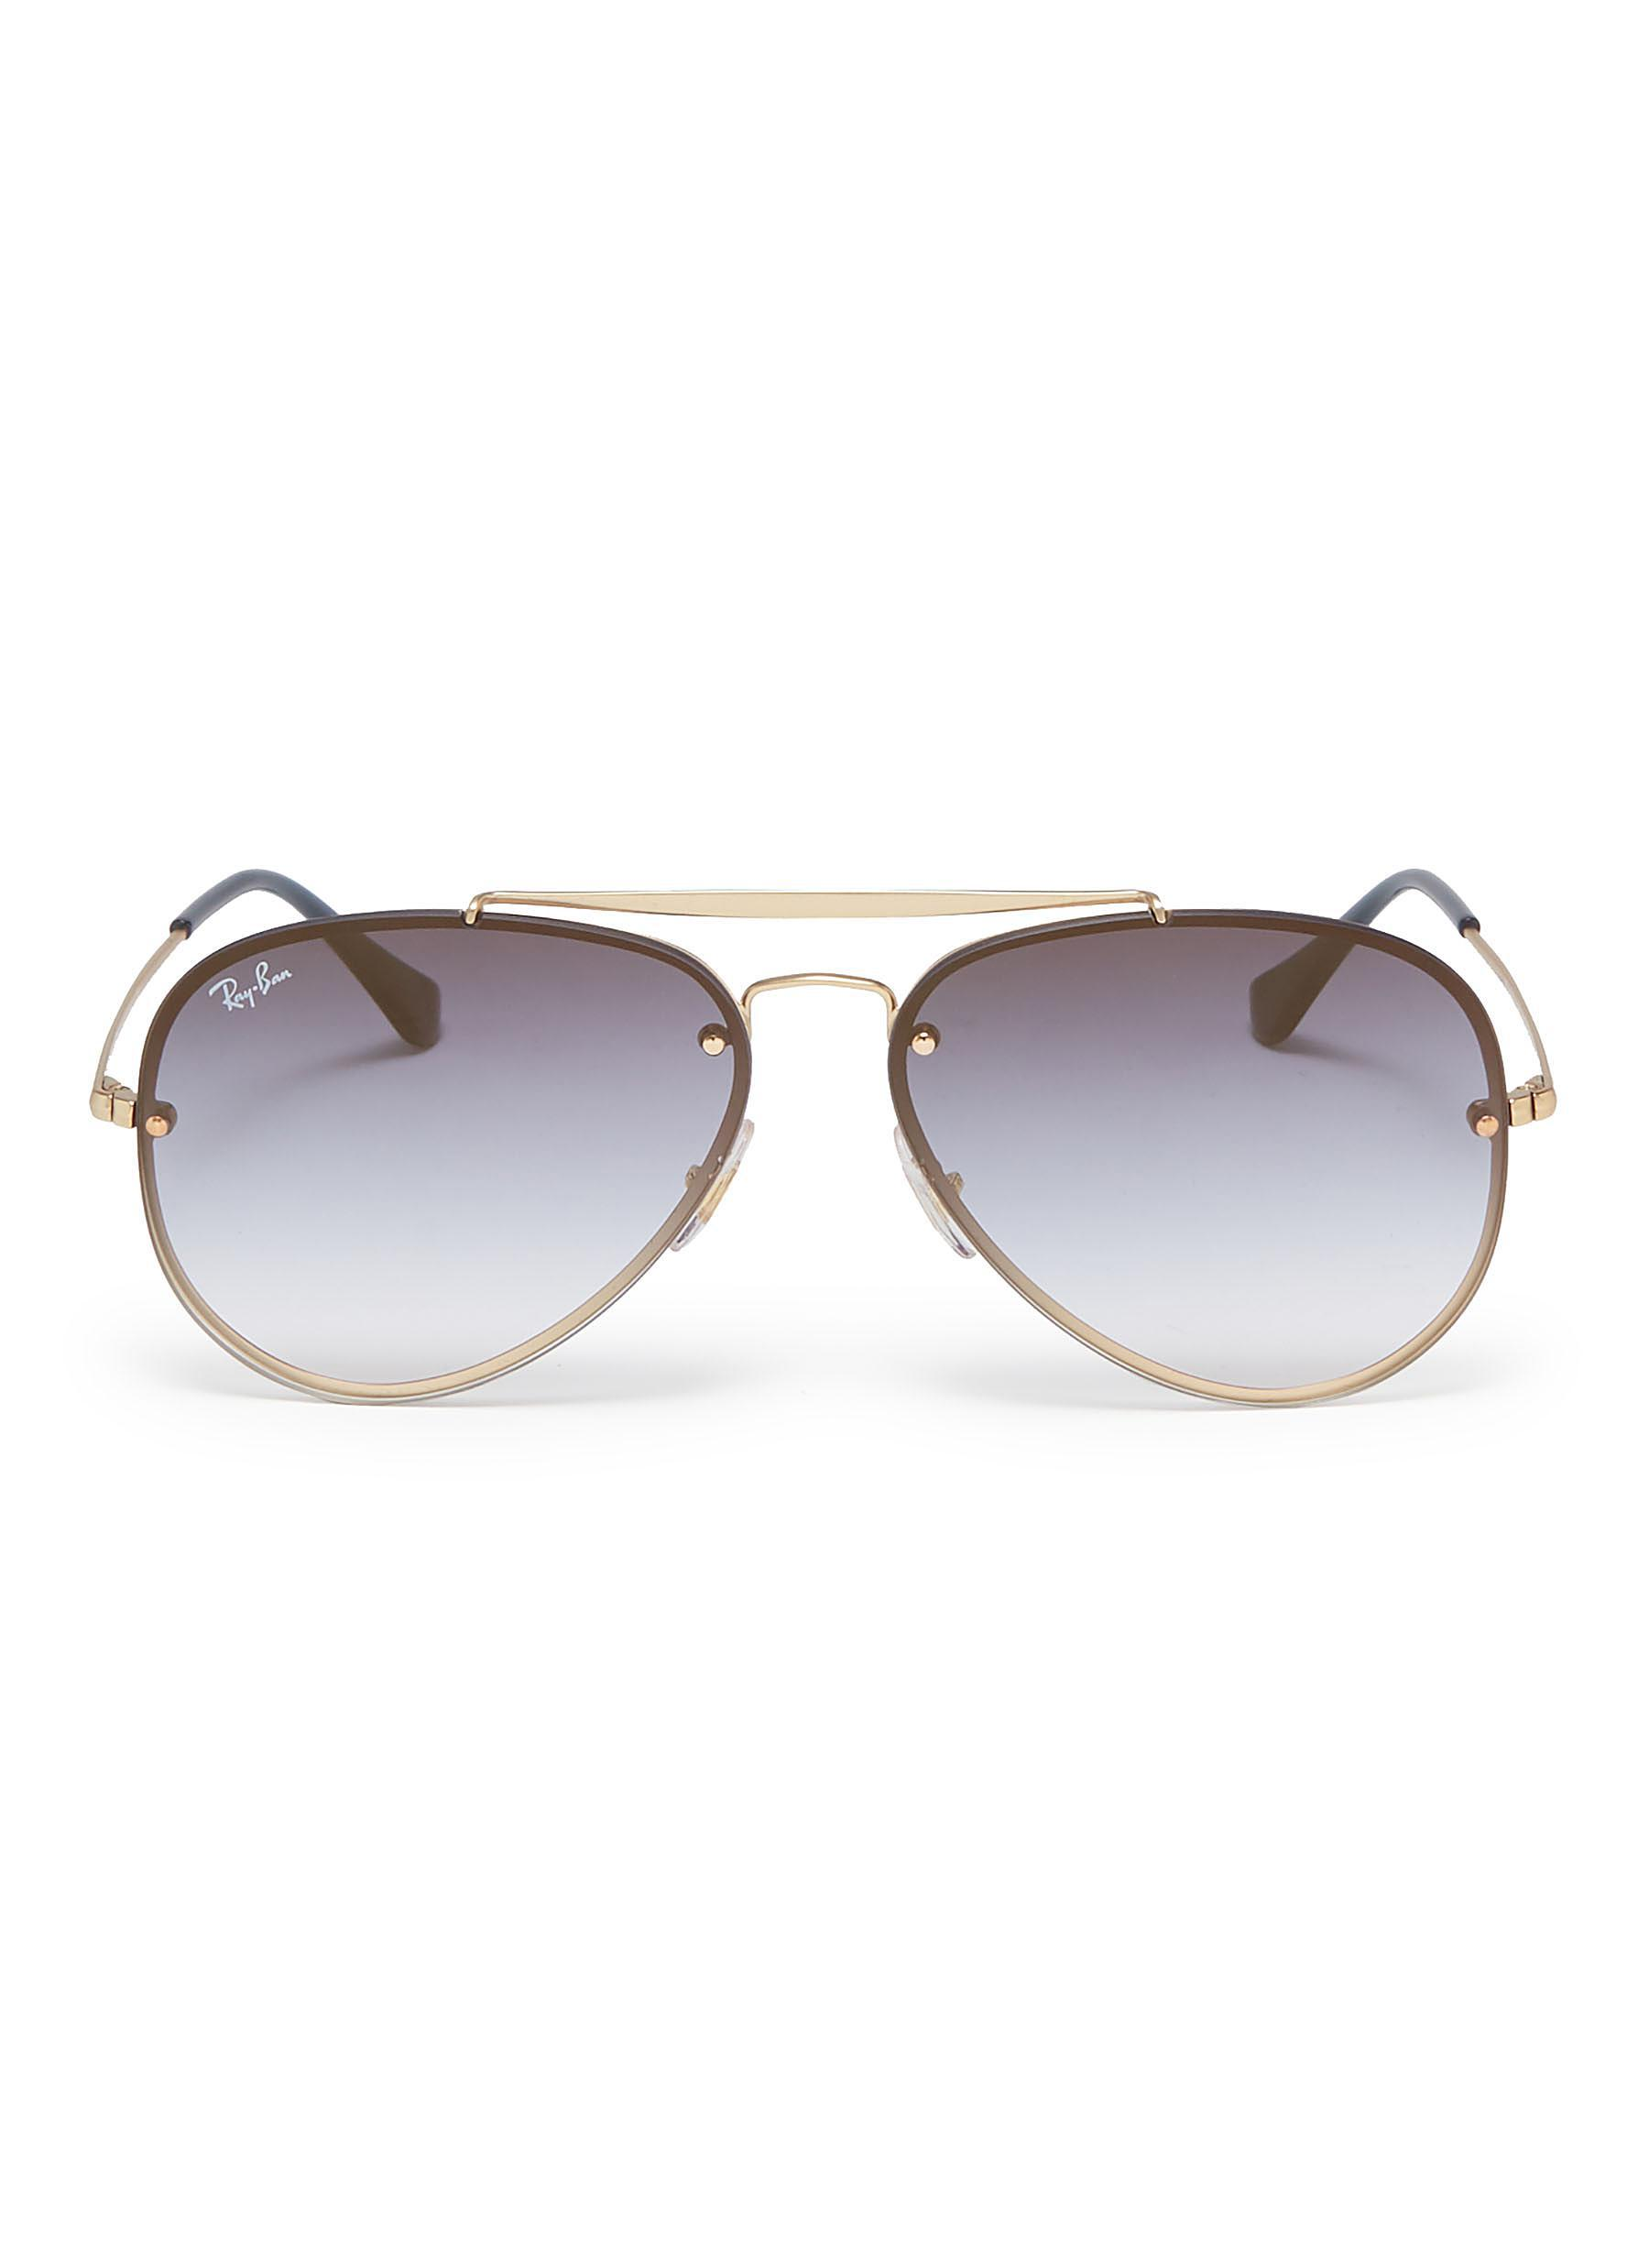 08d0d55bf7 Ray-Ban  blaze  Metal Aviator Sunglasses in Metallic for Men - Lyst